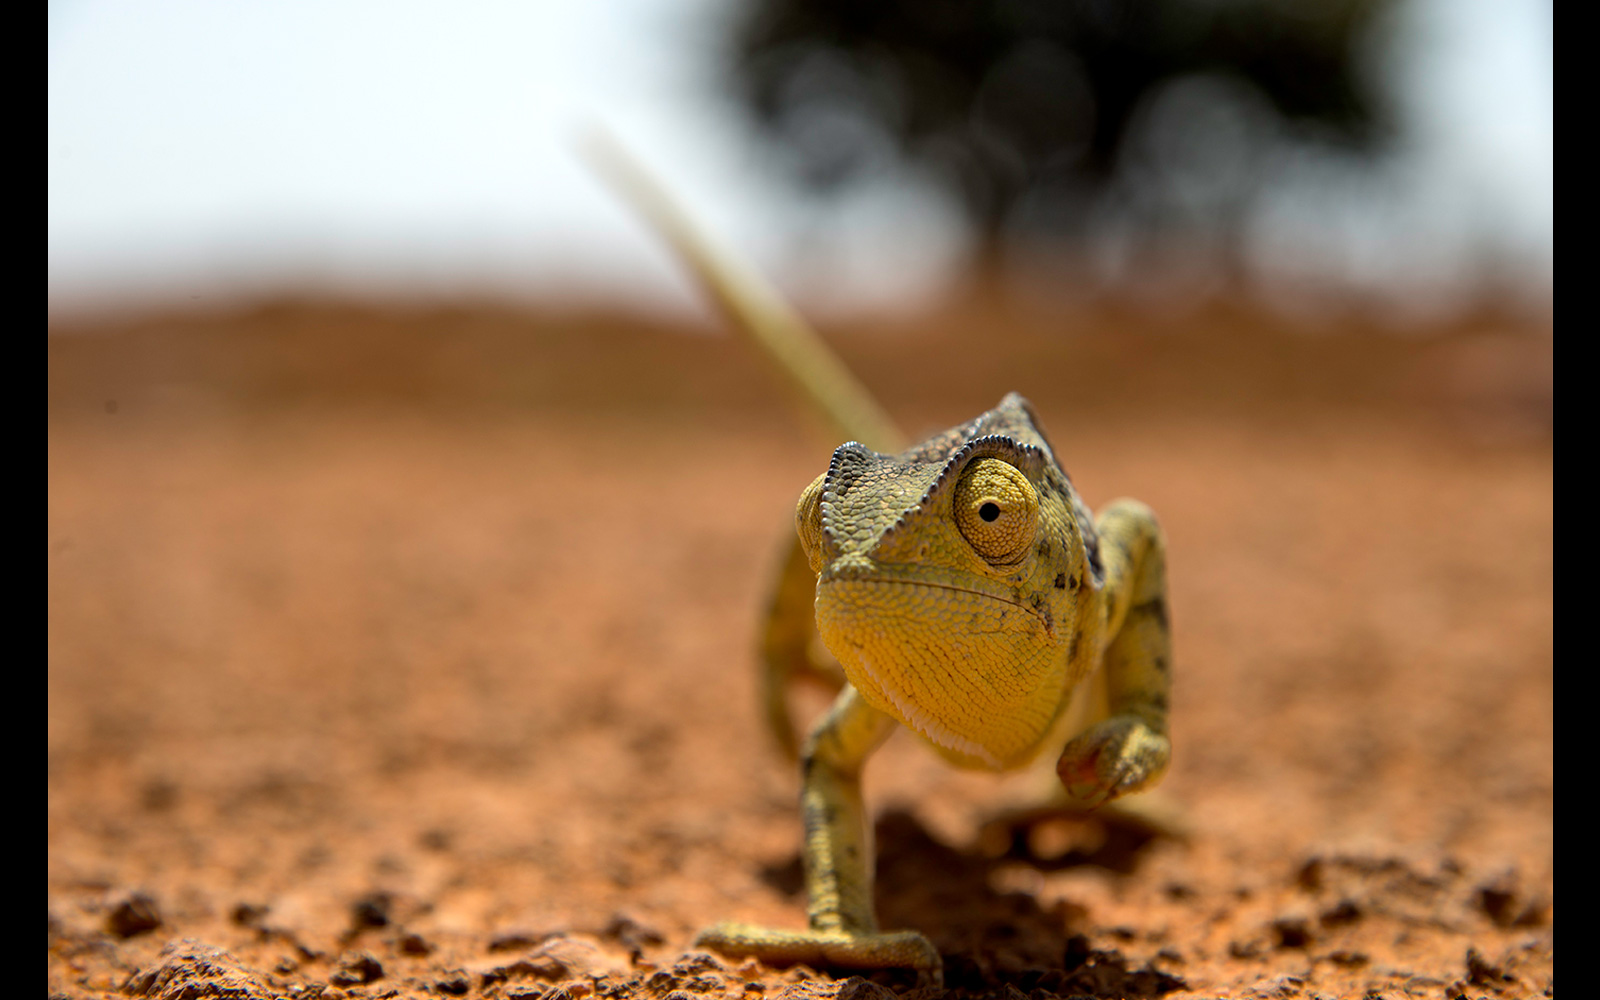 A curious chameleon on the road in Tanzania © Darryn Haltmann